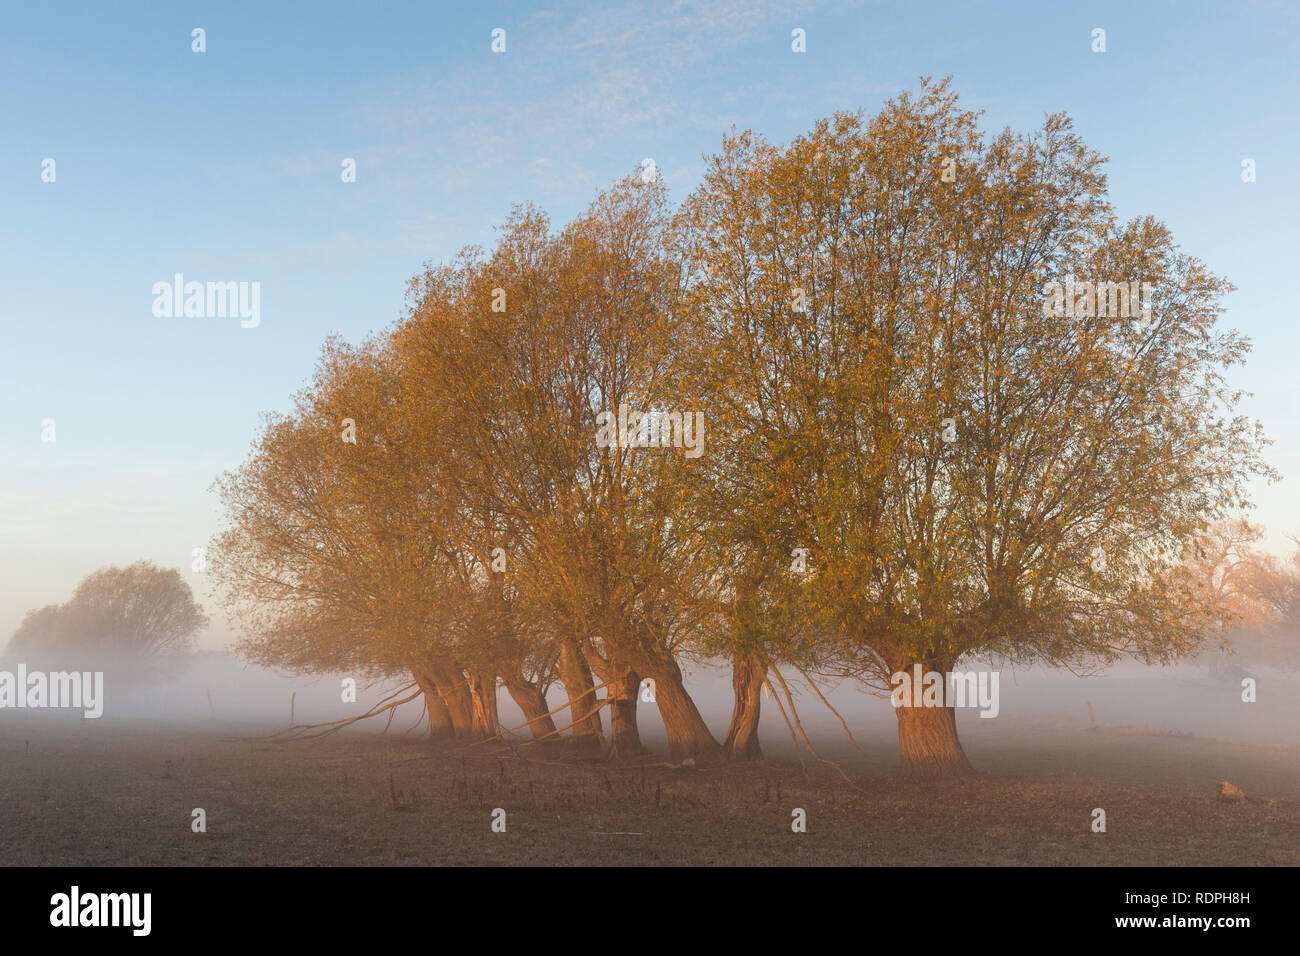 Row of pollard willows / pollarded white willows (Salix alba) in field in the mist in autumn - Stock Image